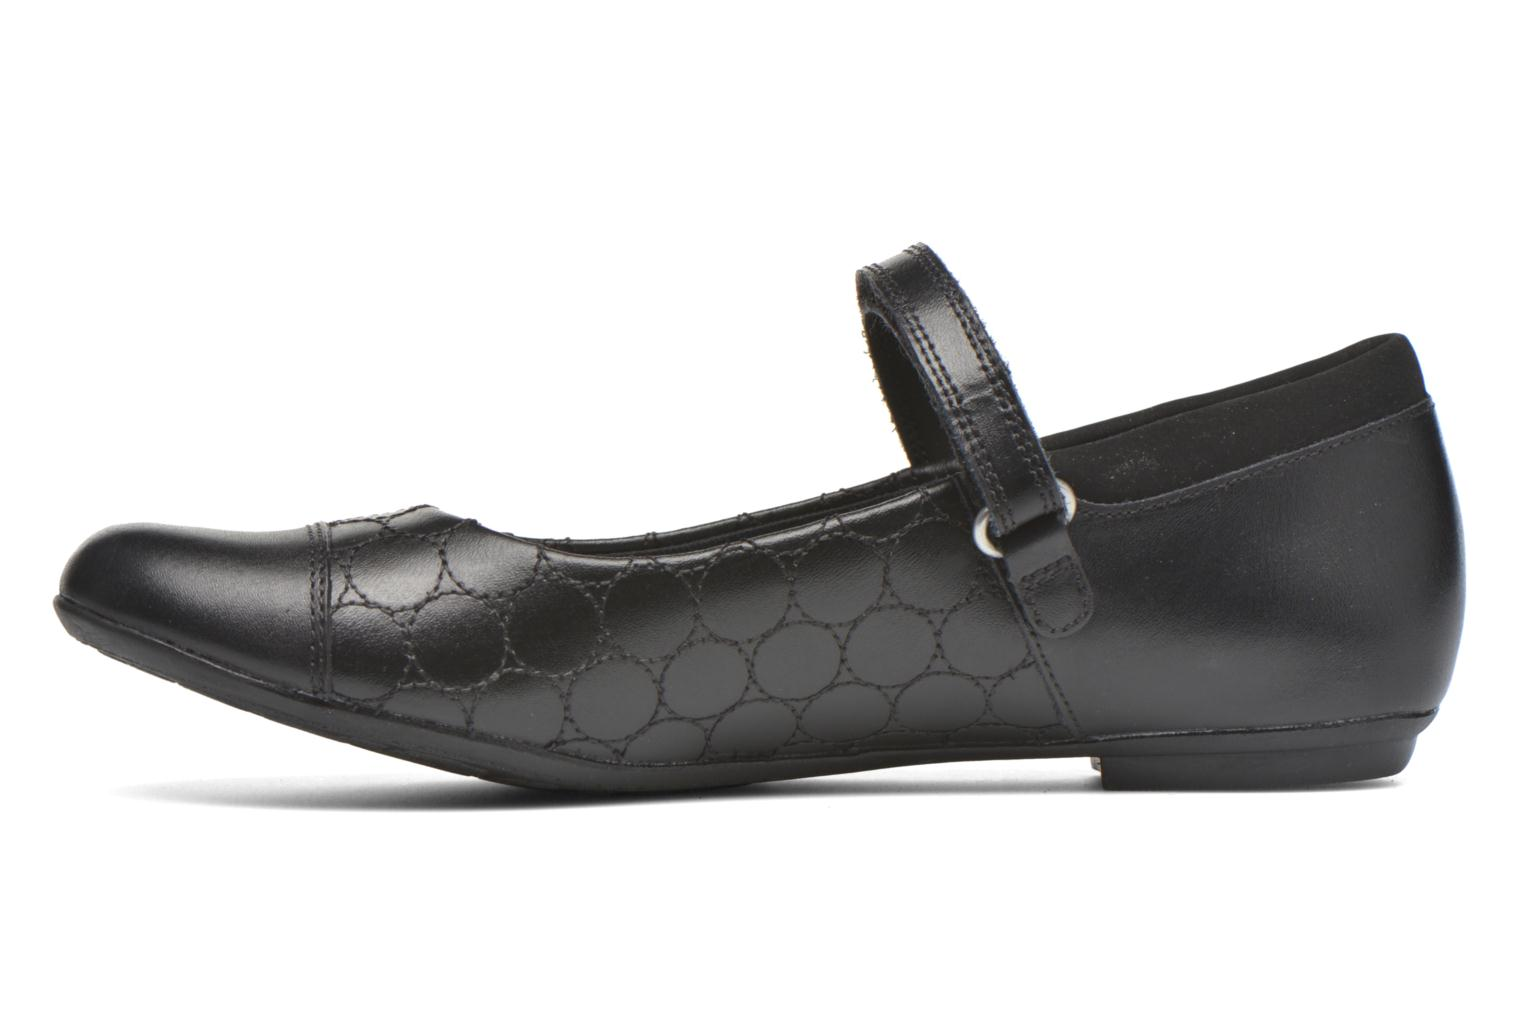 Tizz Whizz BL Black leather